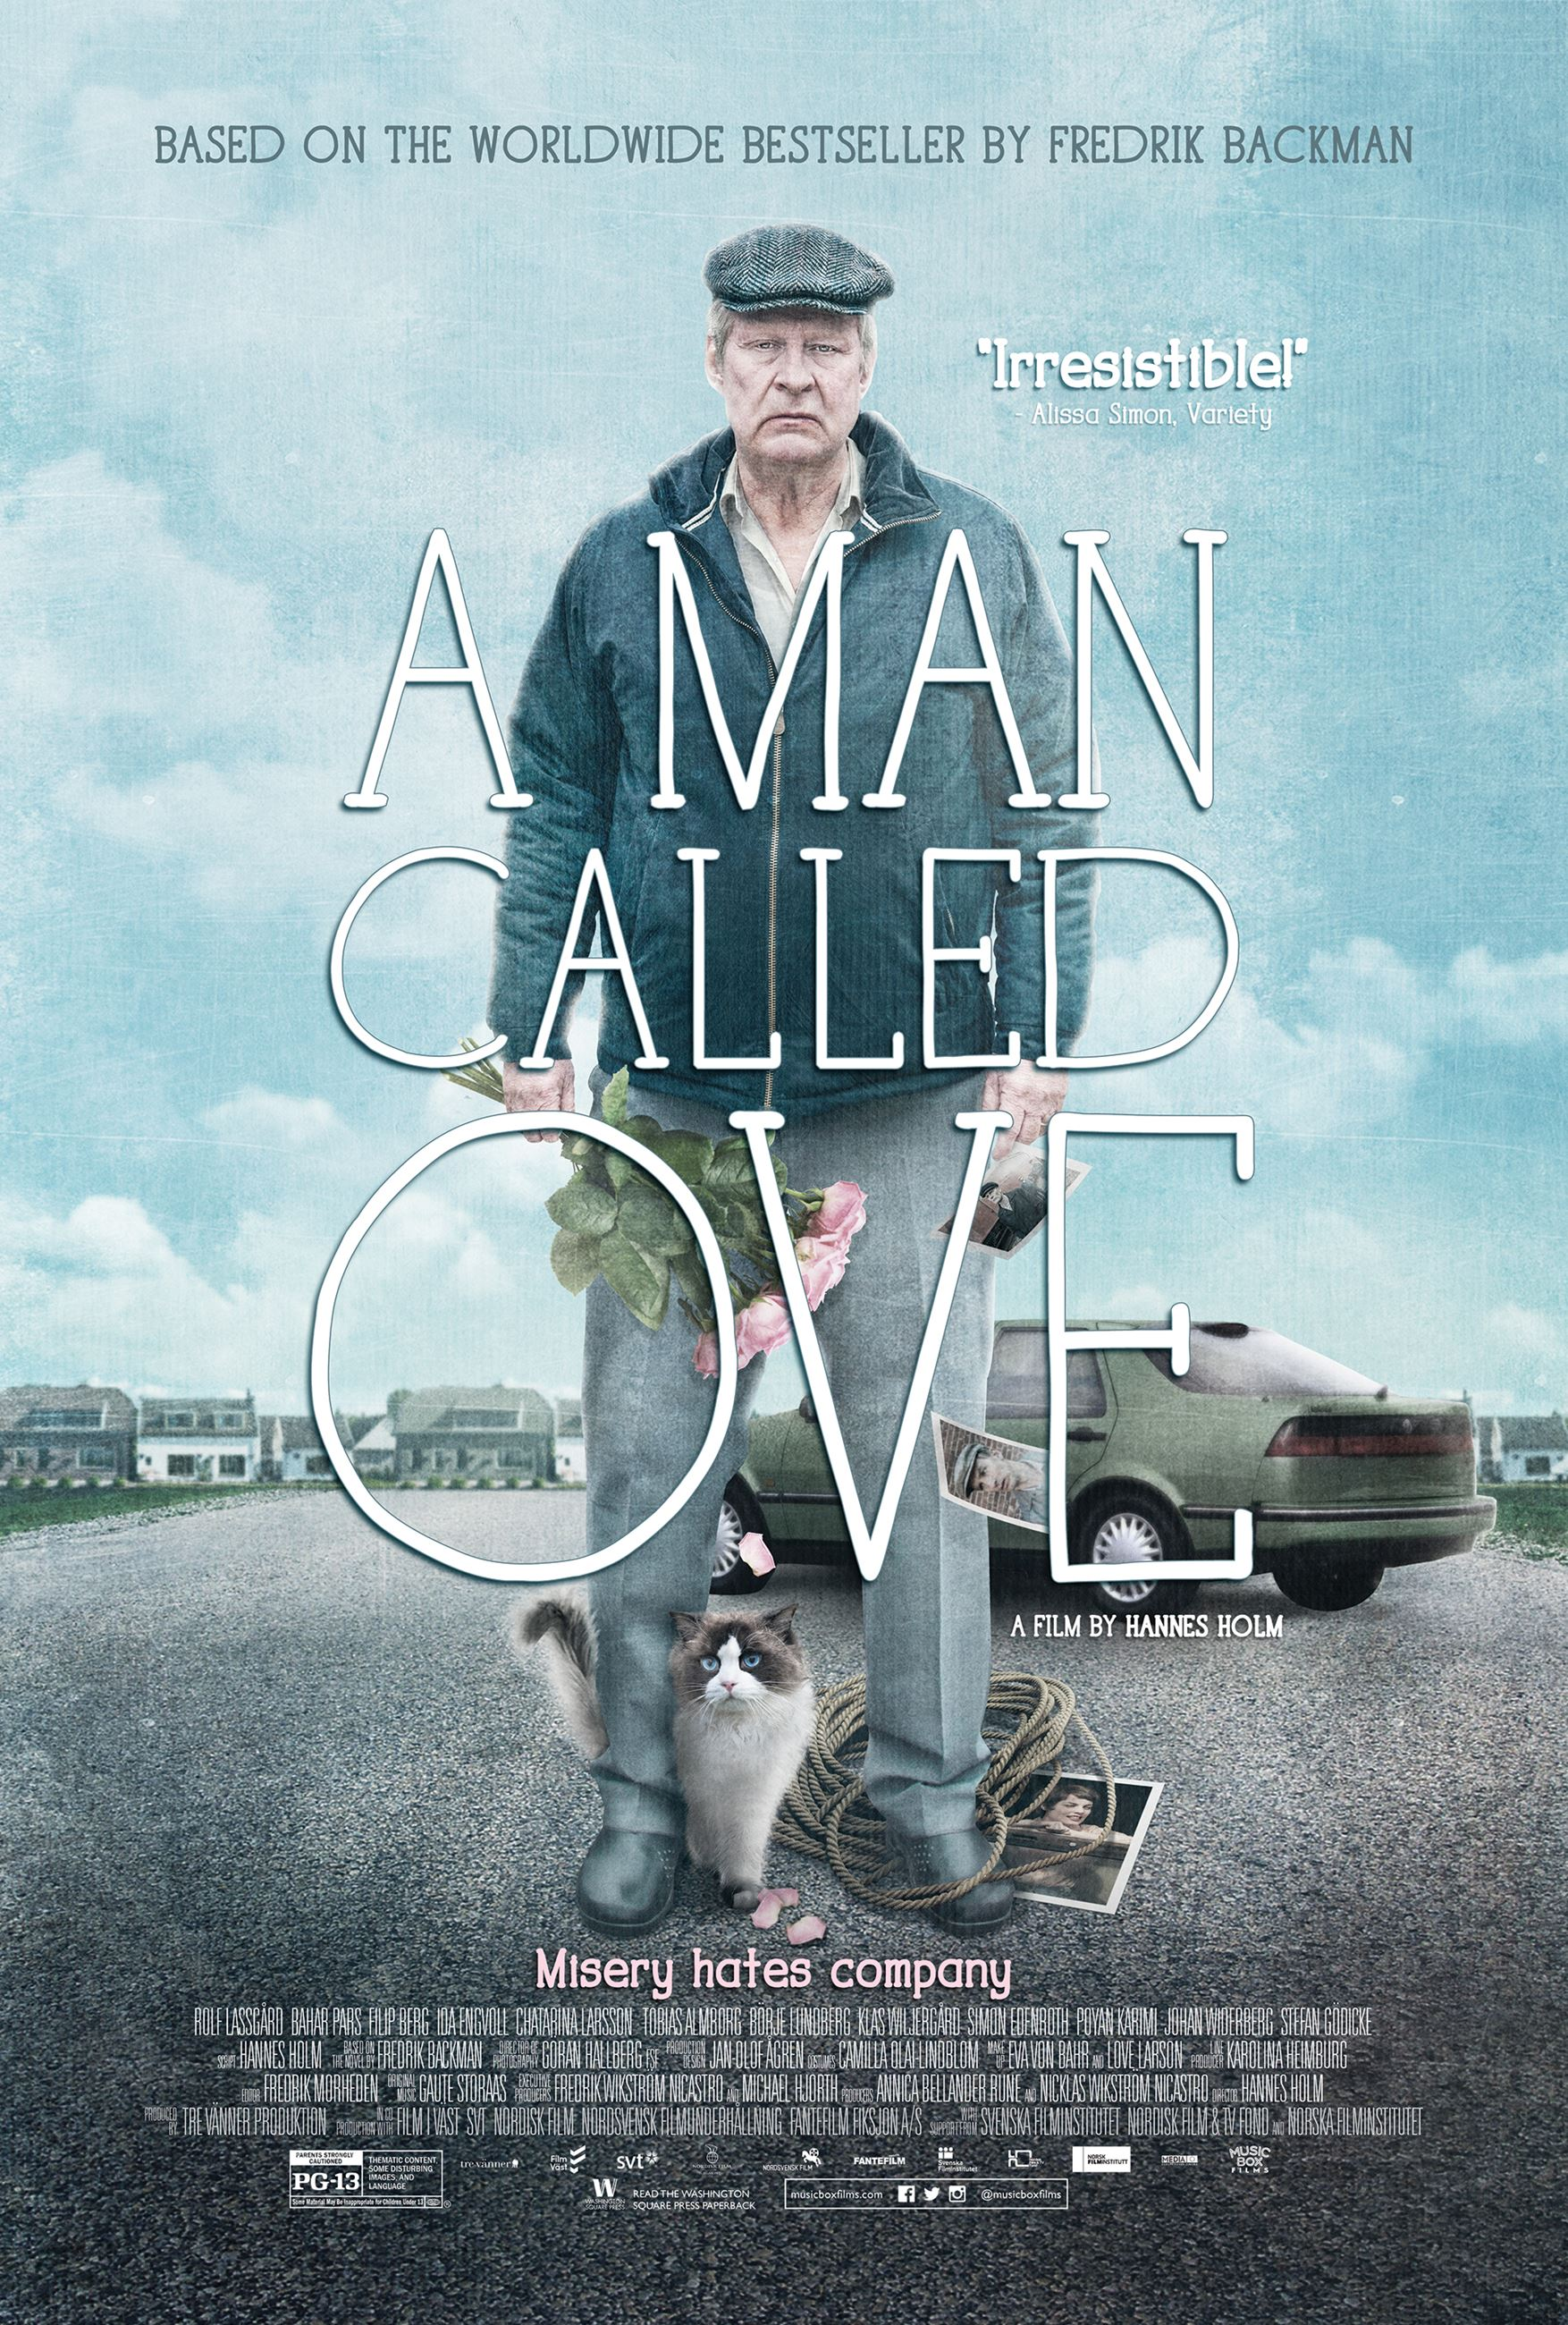 Man-called-Ove_Poster